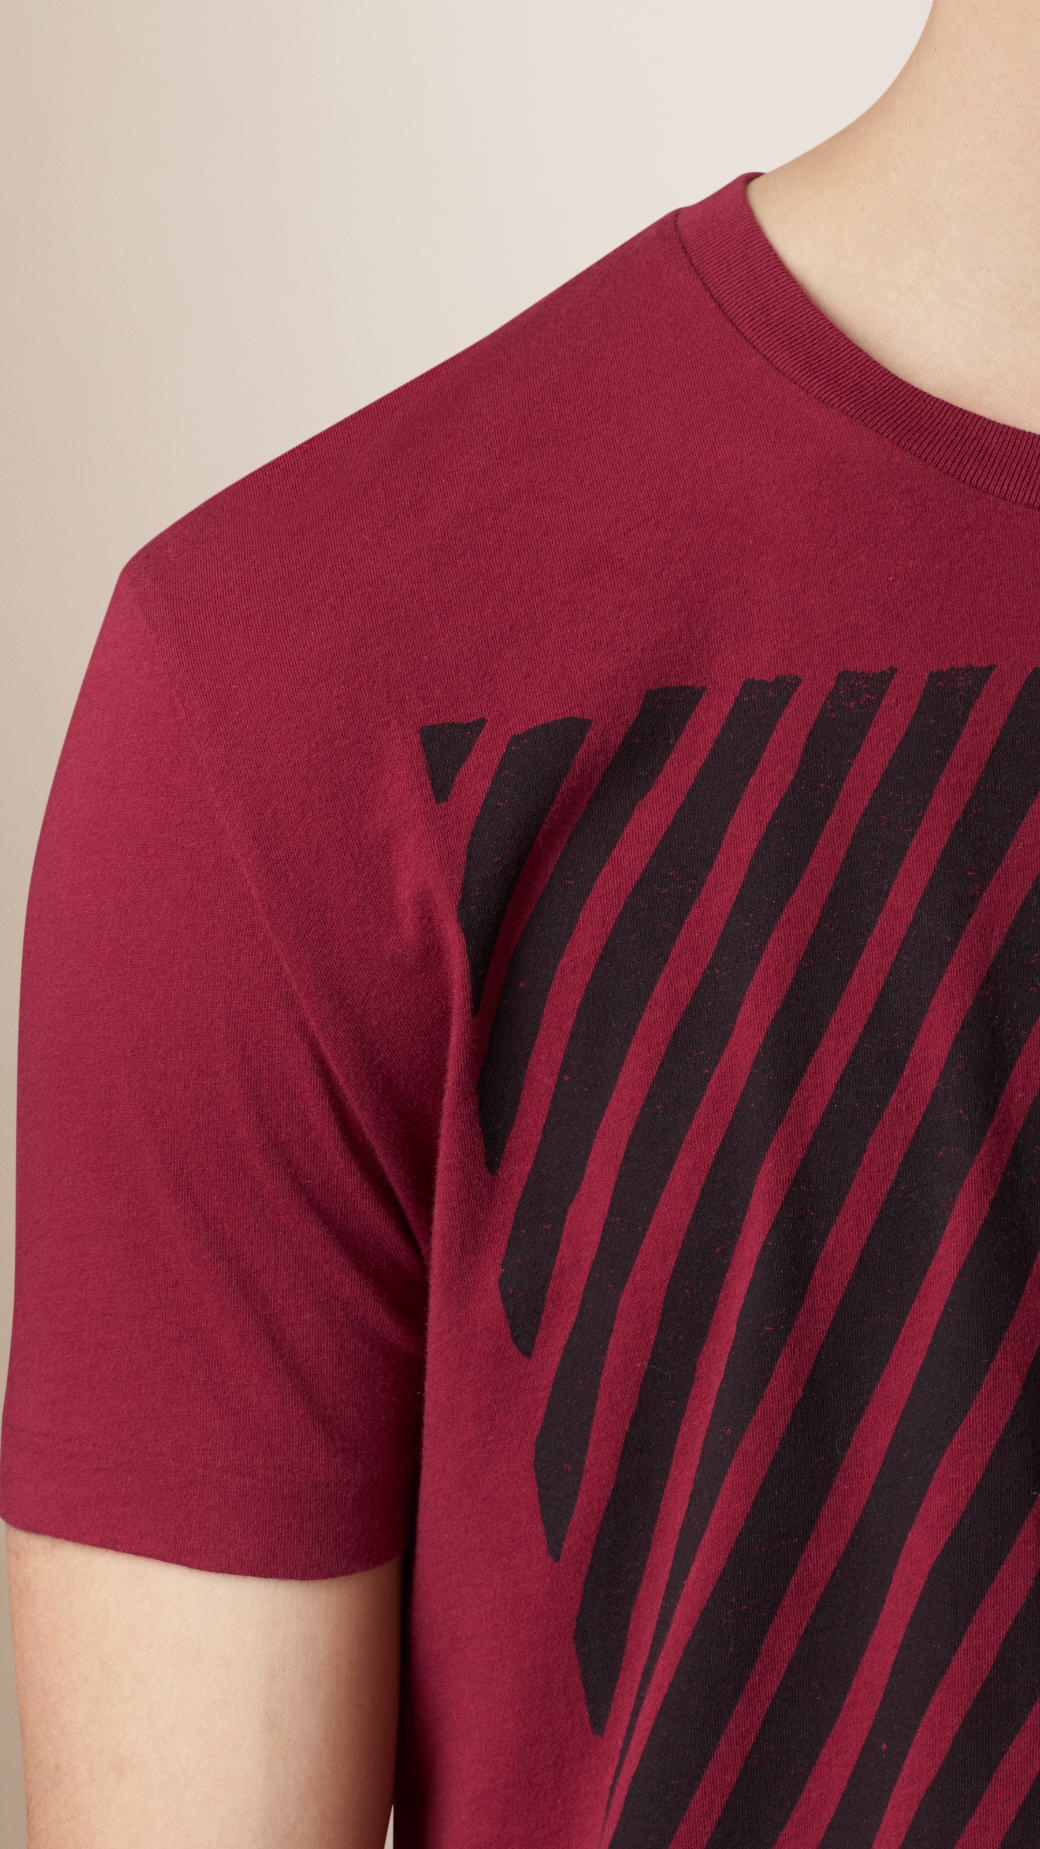 Lyst burberry abstract striped t shirt in purple for men for Purple and black striped t shirt